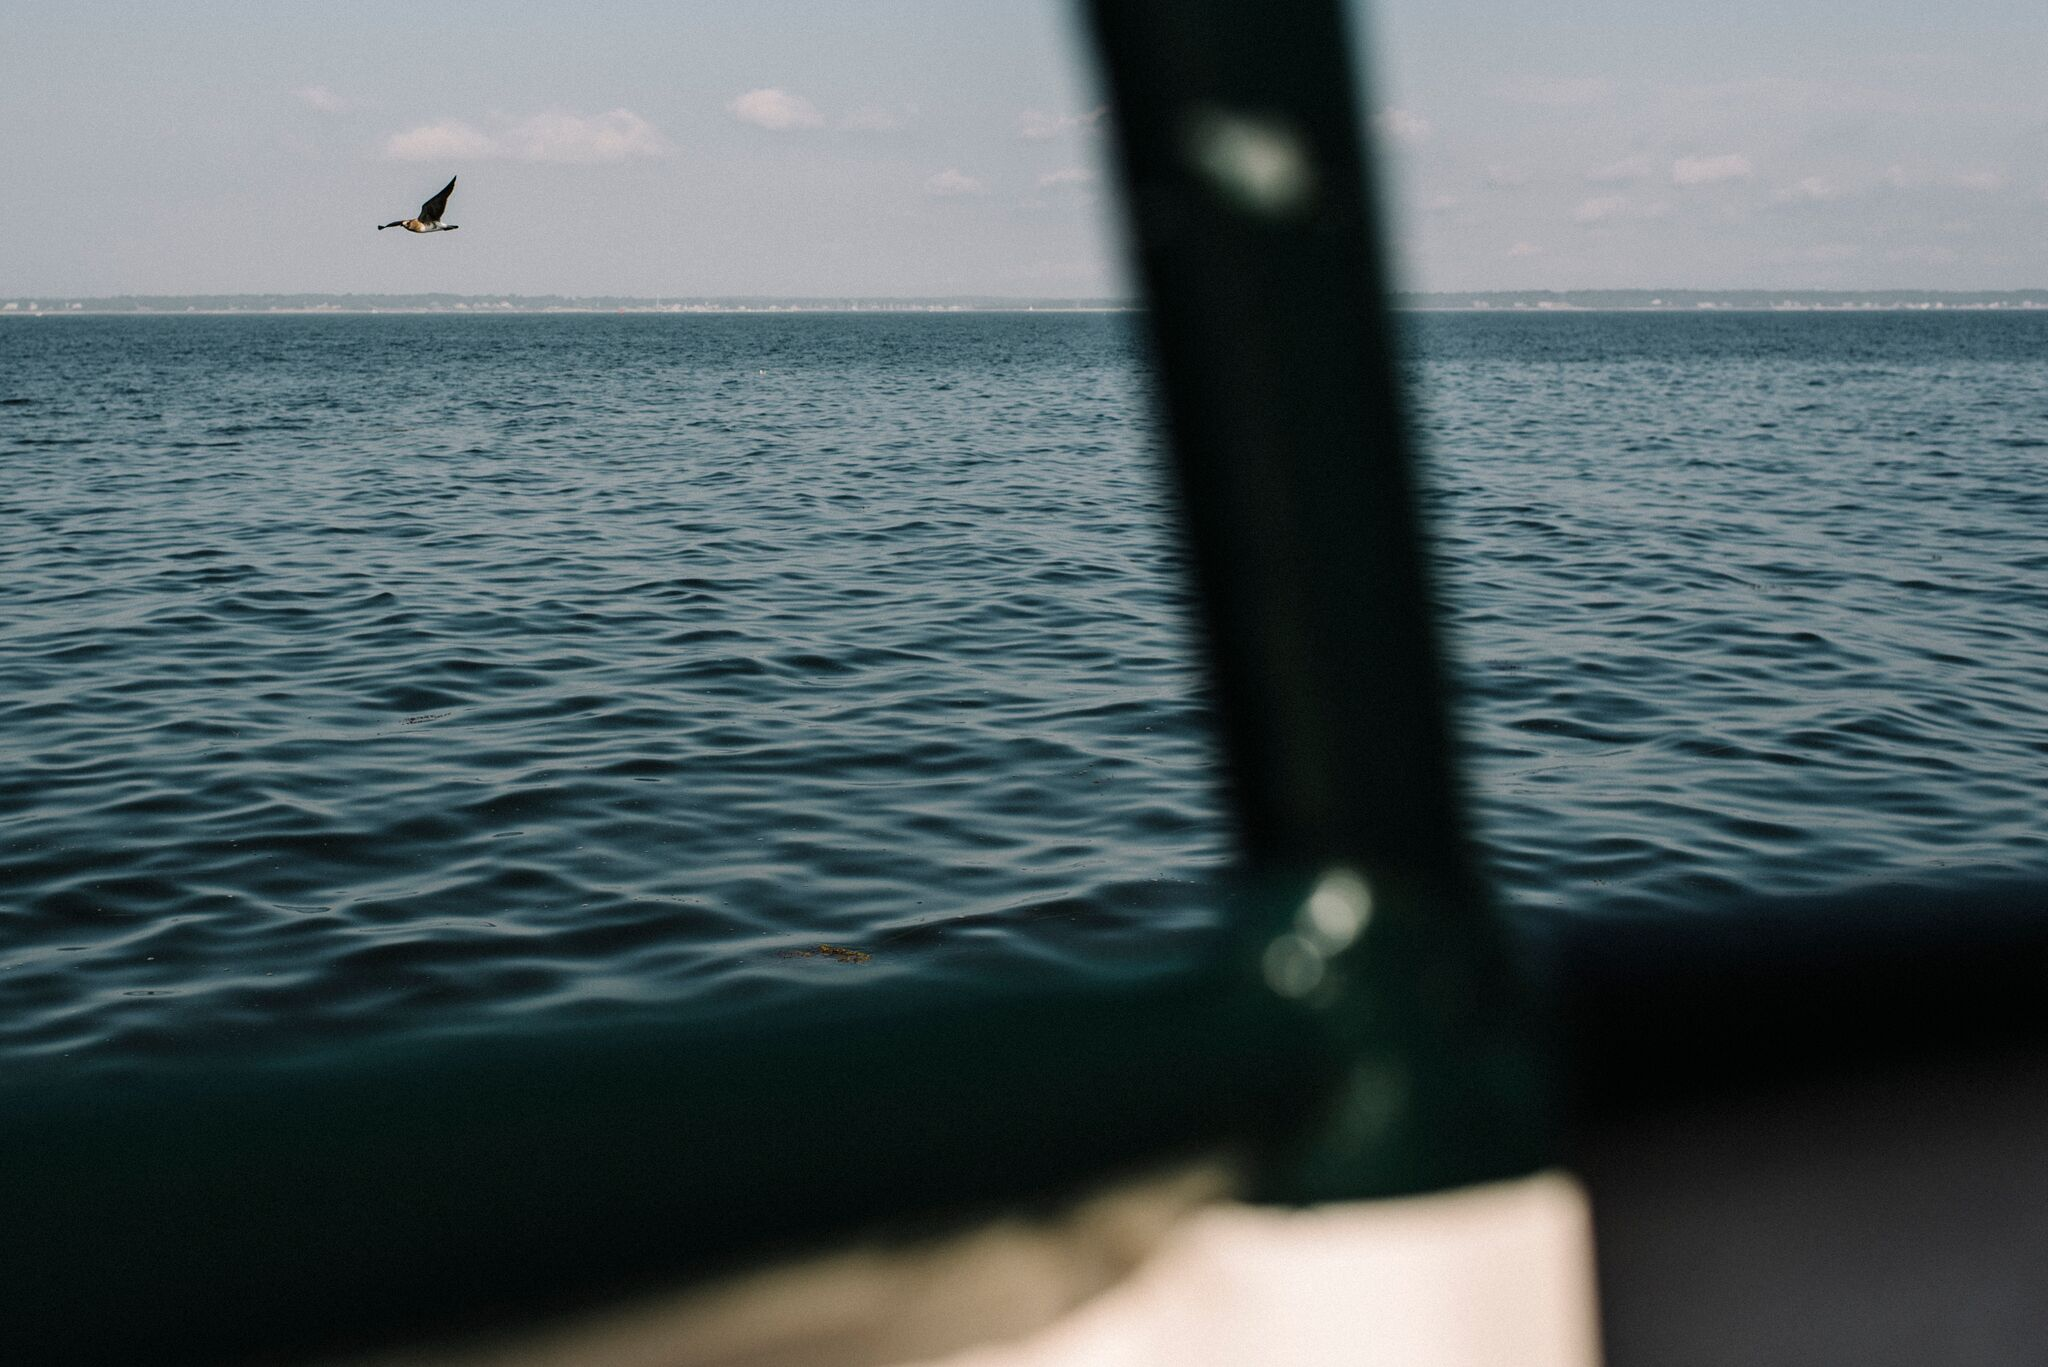 Seagull flying next to a ferry boat